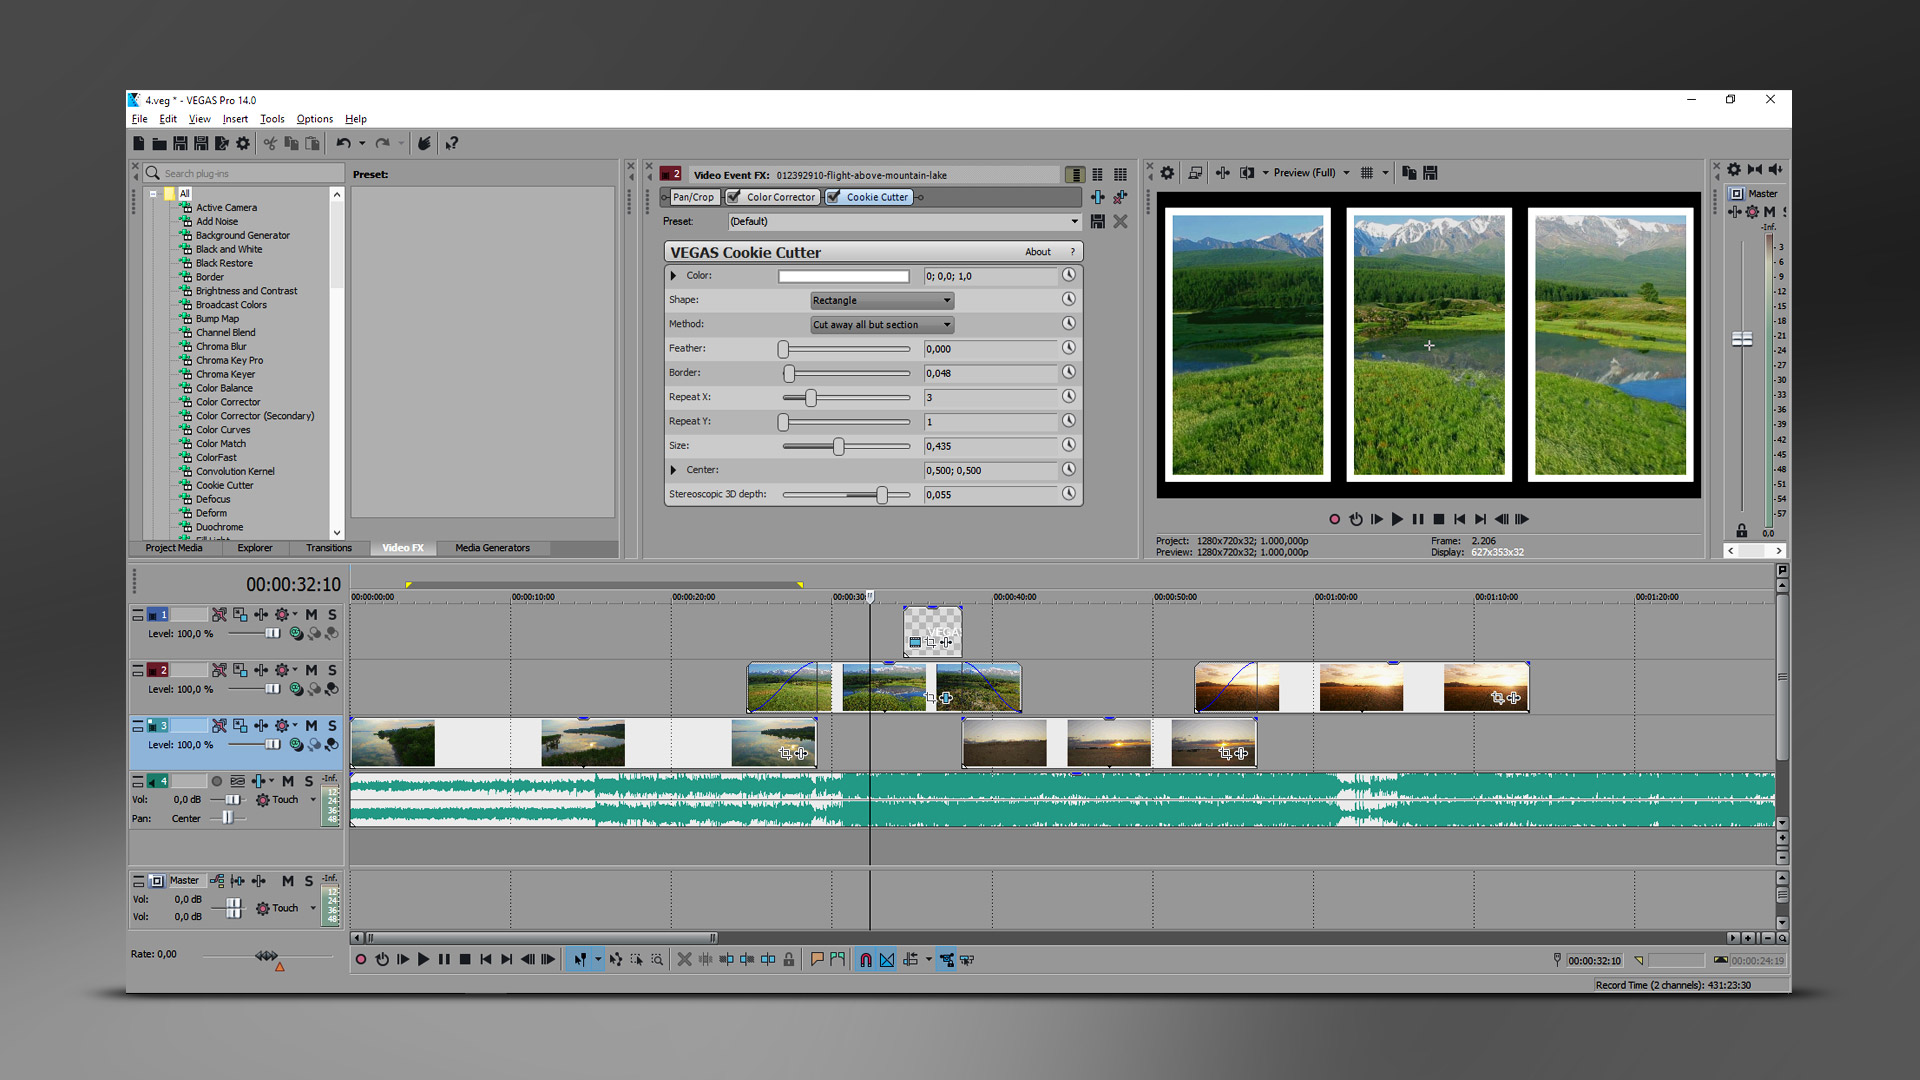 sony vegas pro 14 free download 64 bit with crack